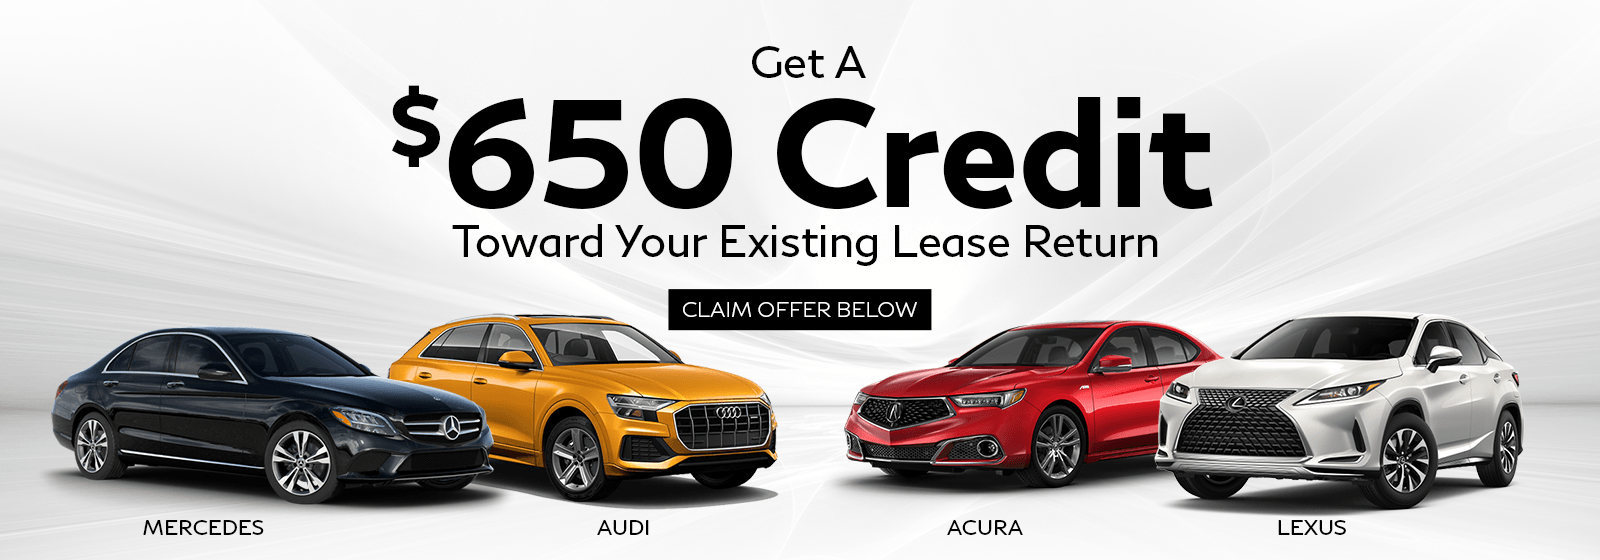 Get A $650 Credit Toward Your Existing Lease Return